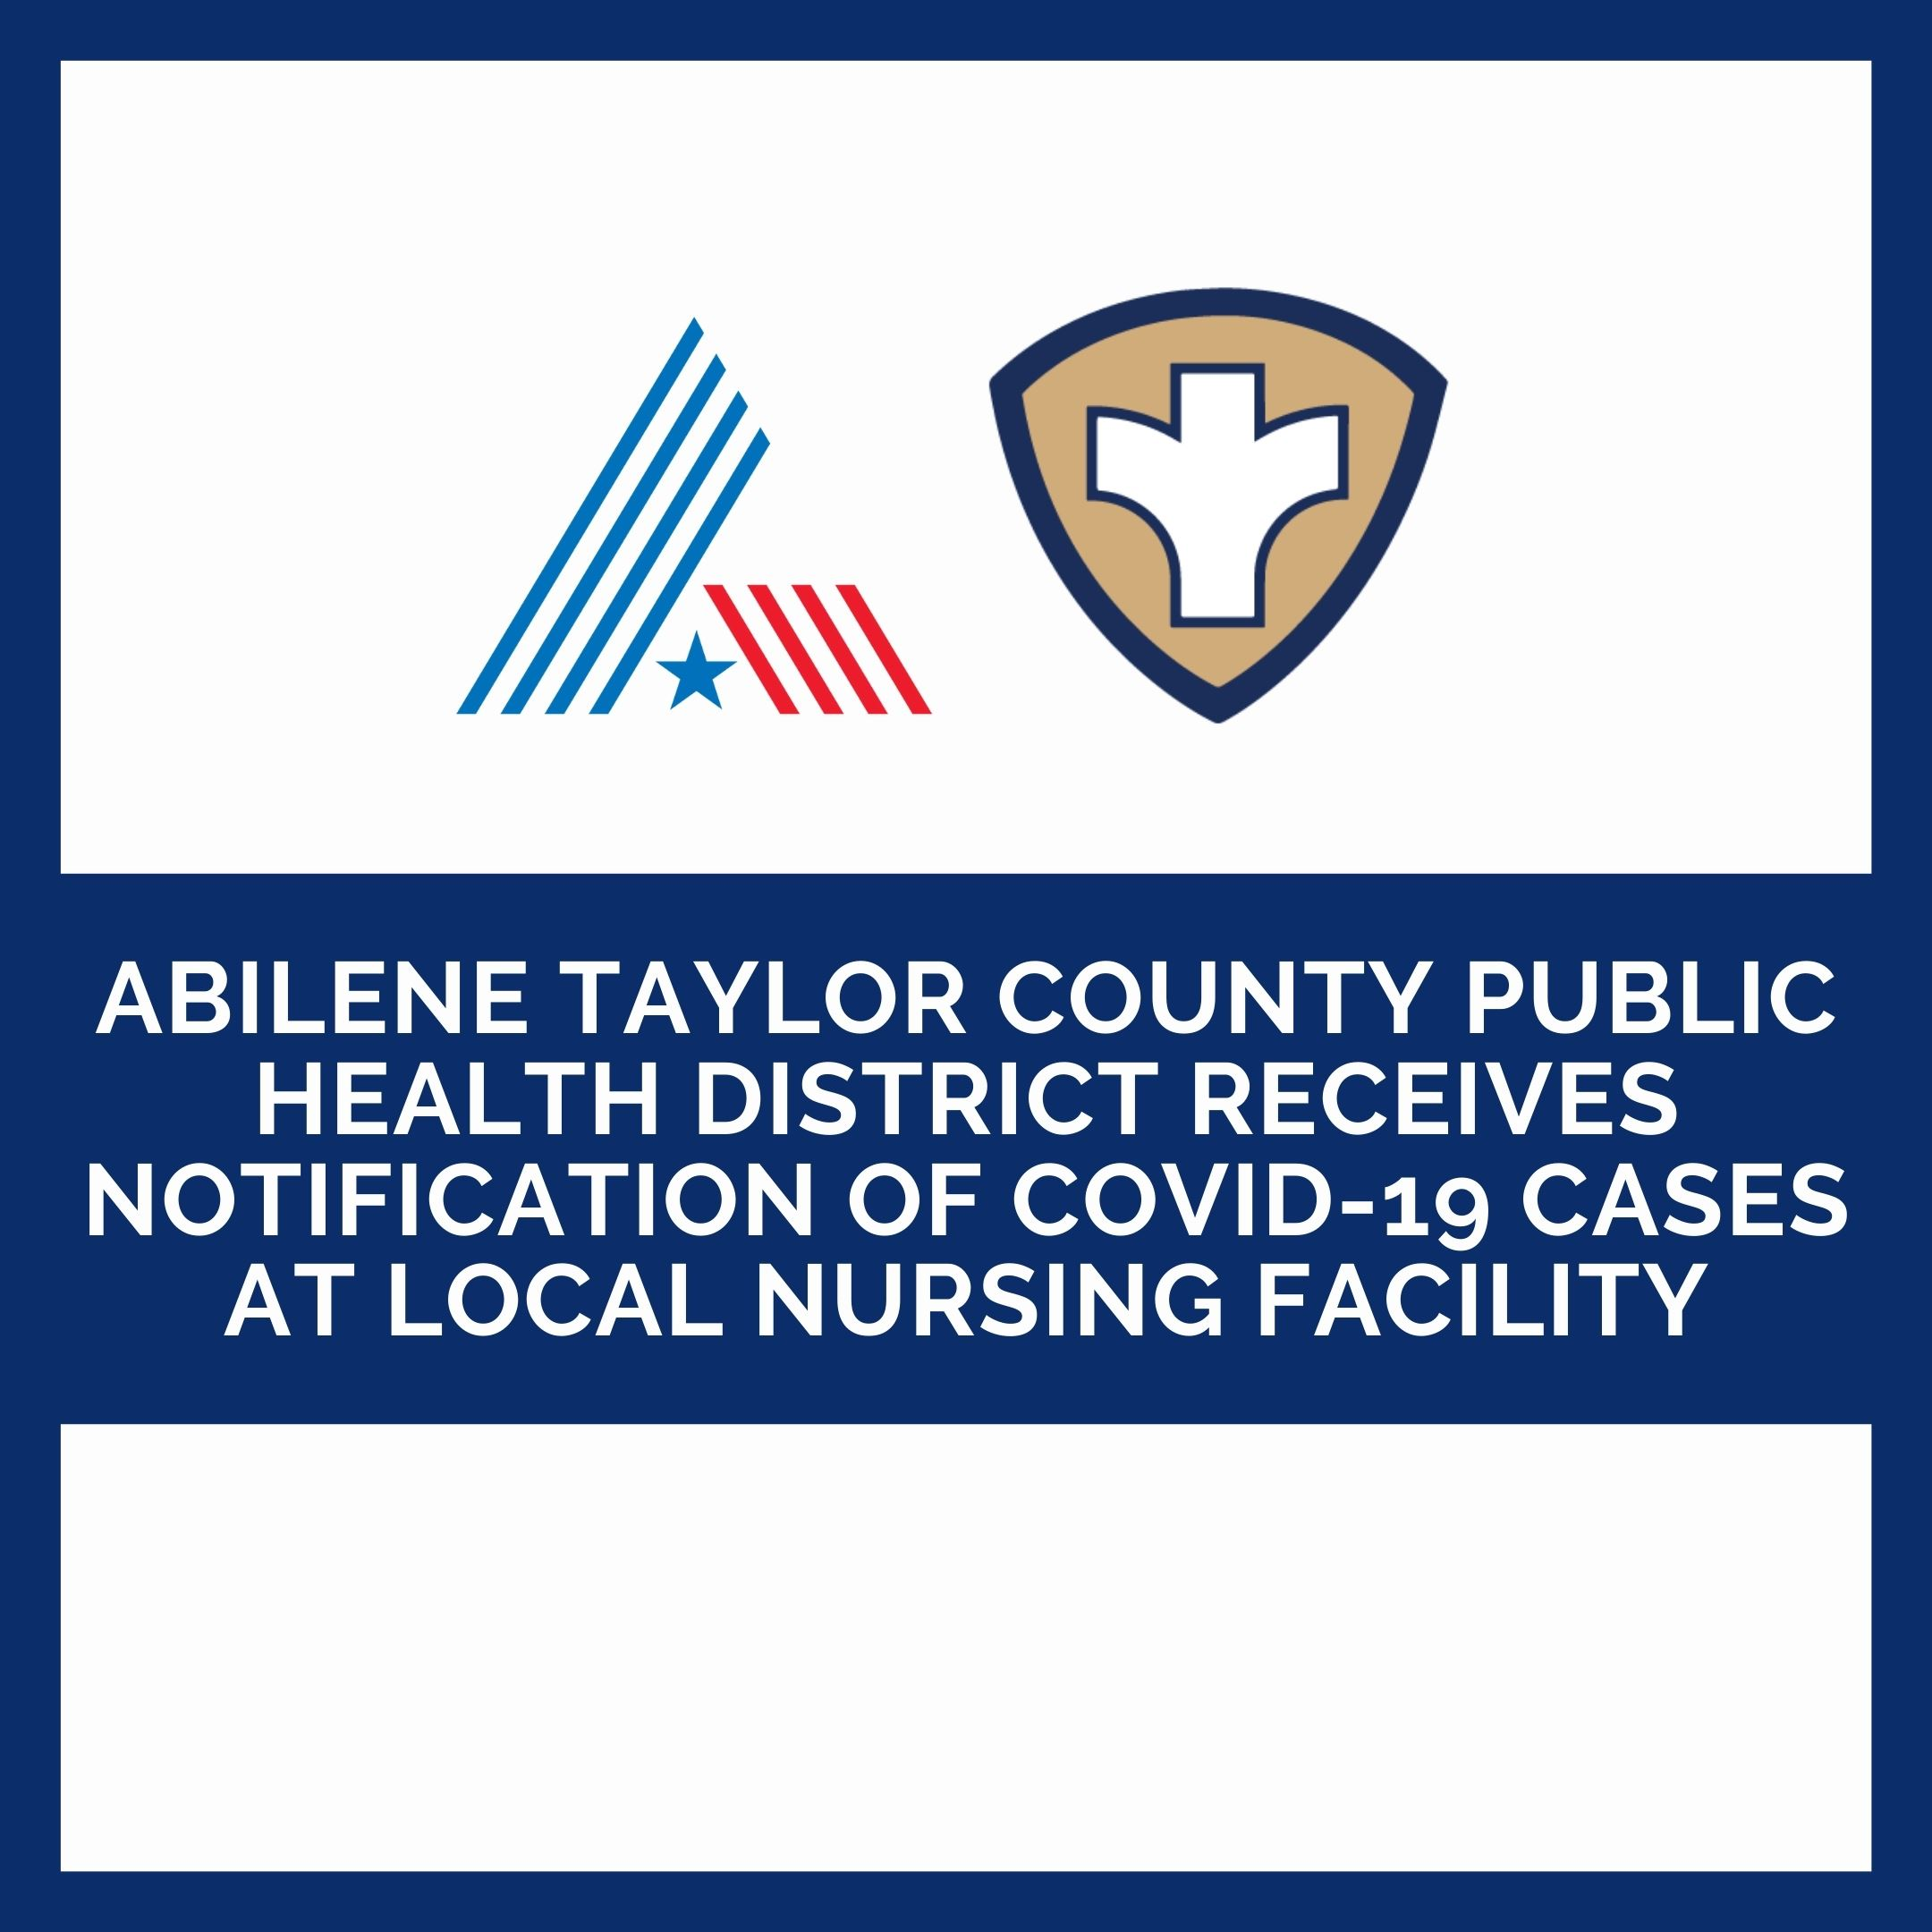 Health District receives notification of positive COVID-19 test results from local nursing facility